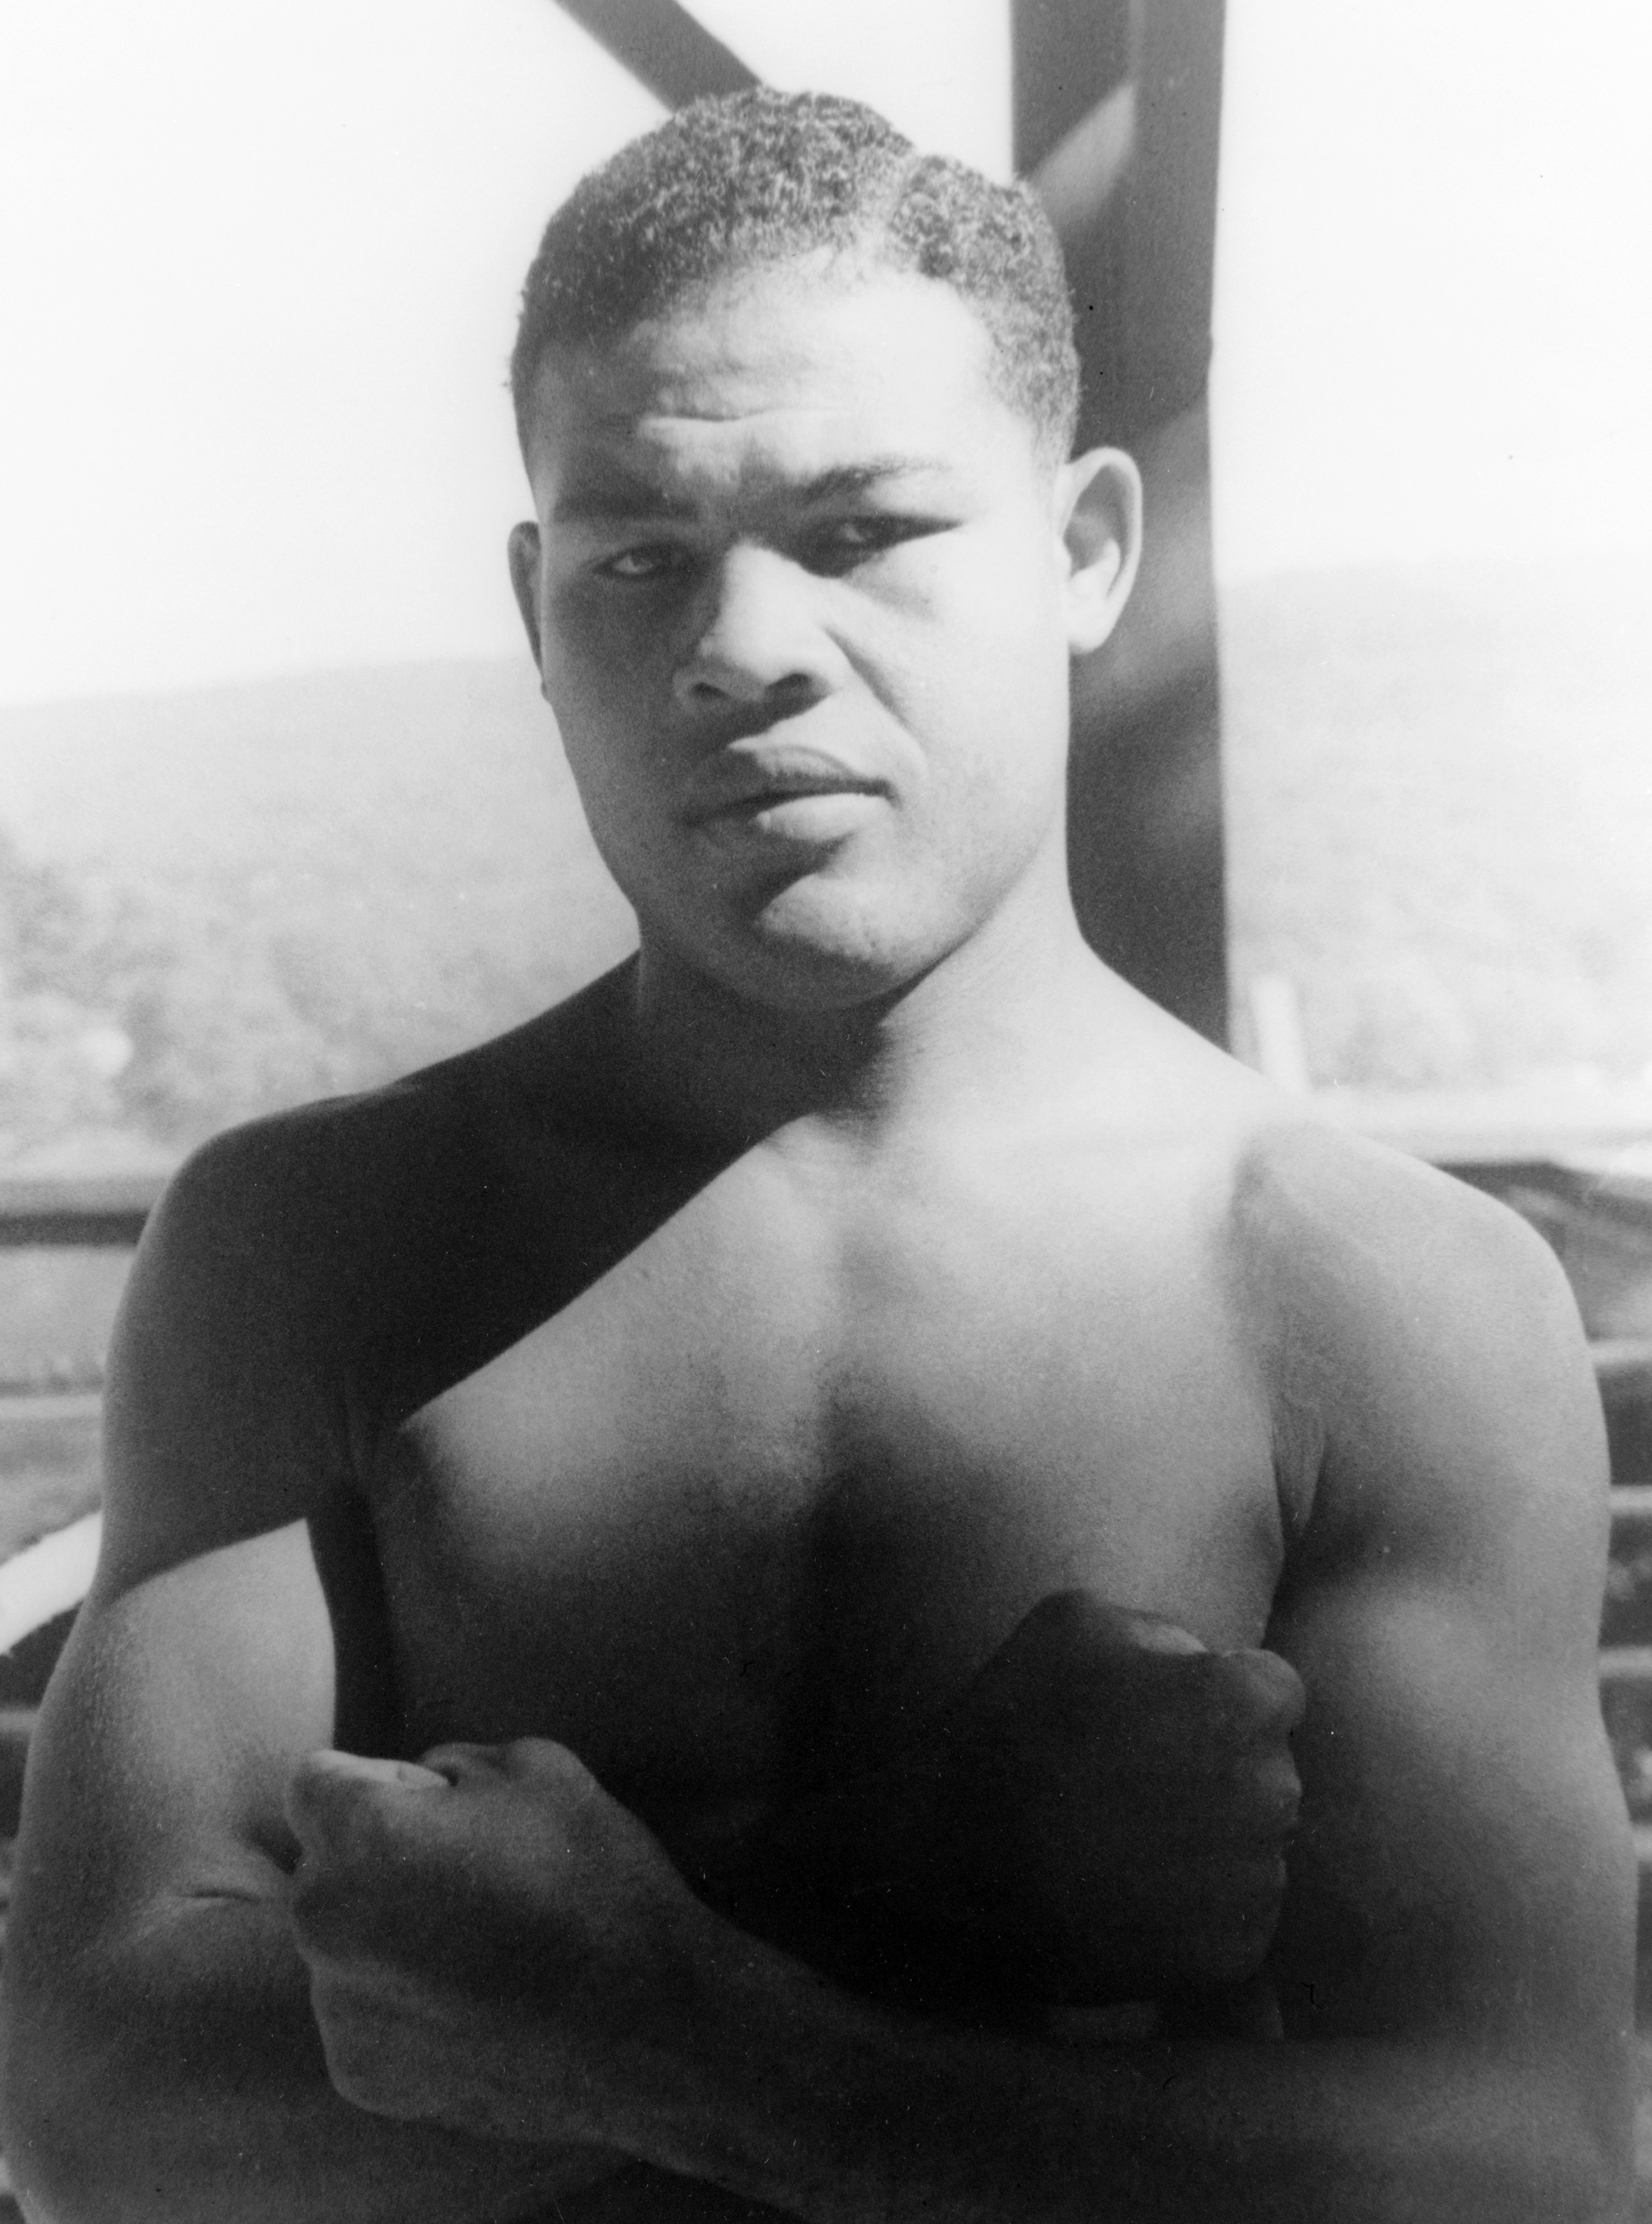 Episode two - The African American boxer Joe Louis reigned as the world heavyweight champion from 1937 to 1949. This is the story of the two matches he fought against the German boxer Max Schmeling in the years leading up to World War II. Joe Louis is buried in Section 7A.